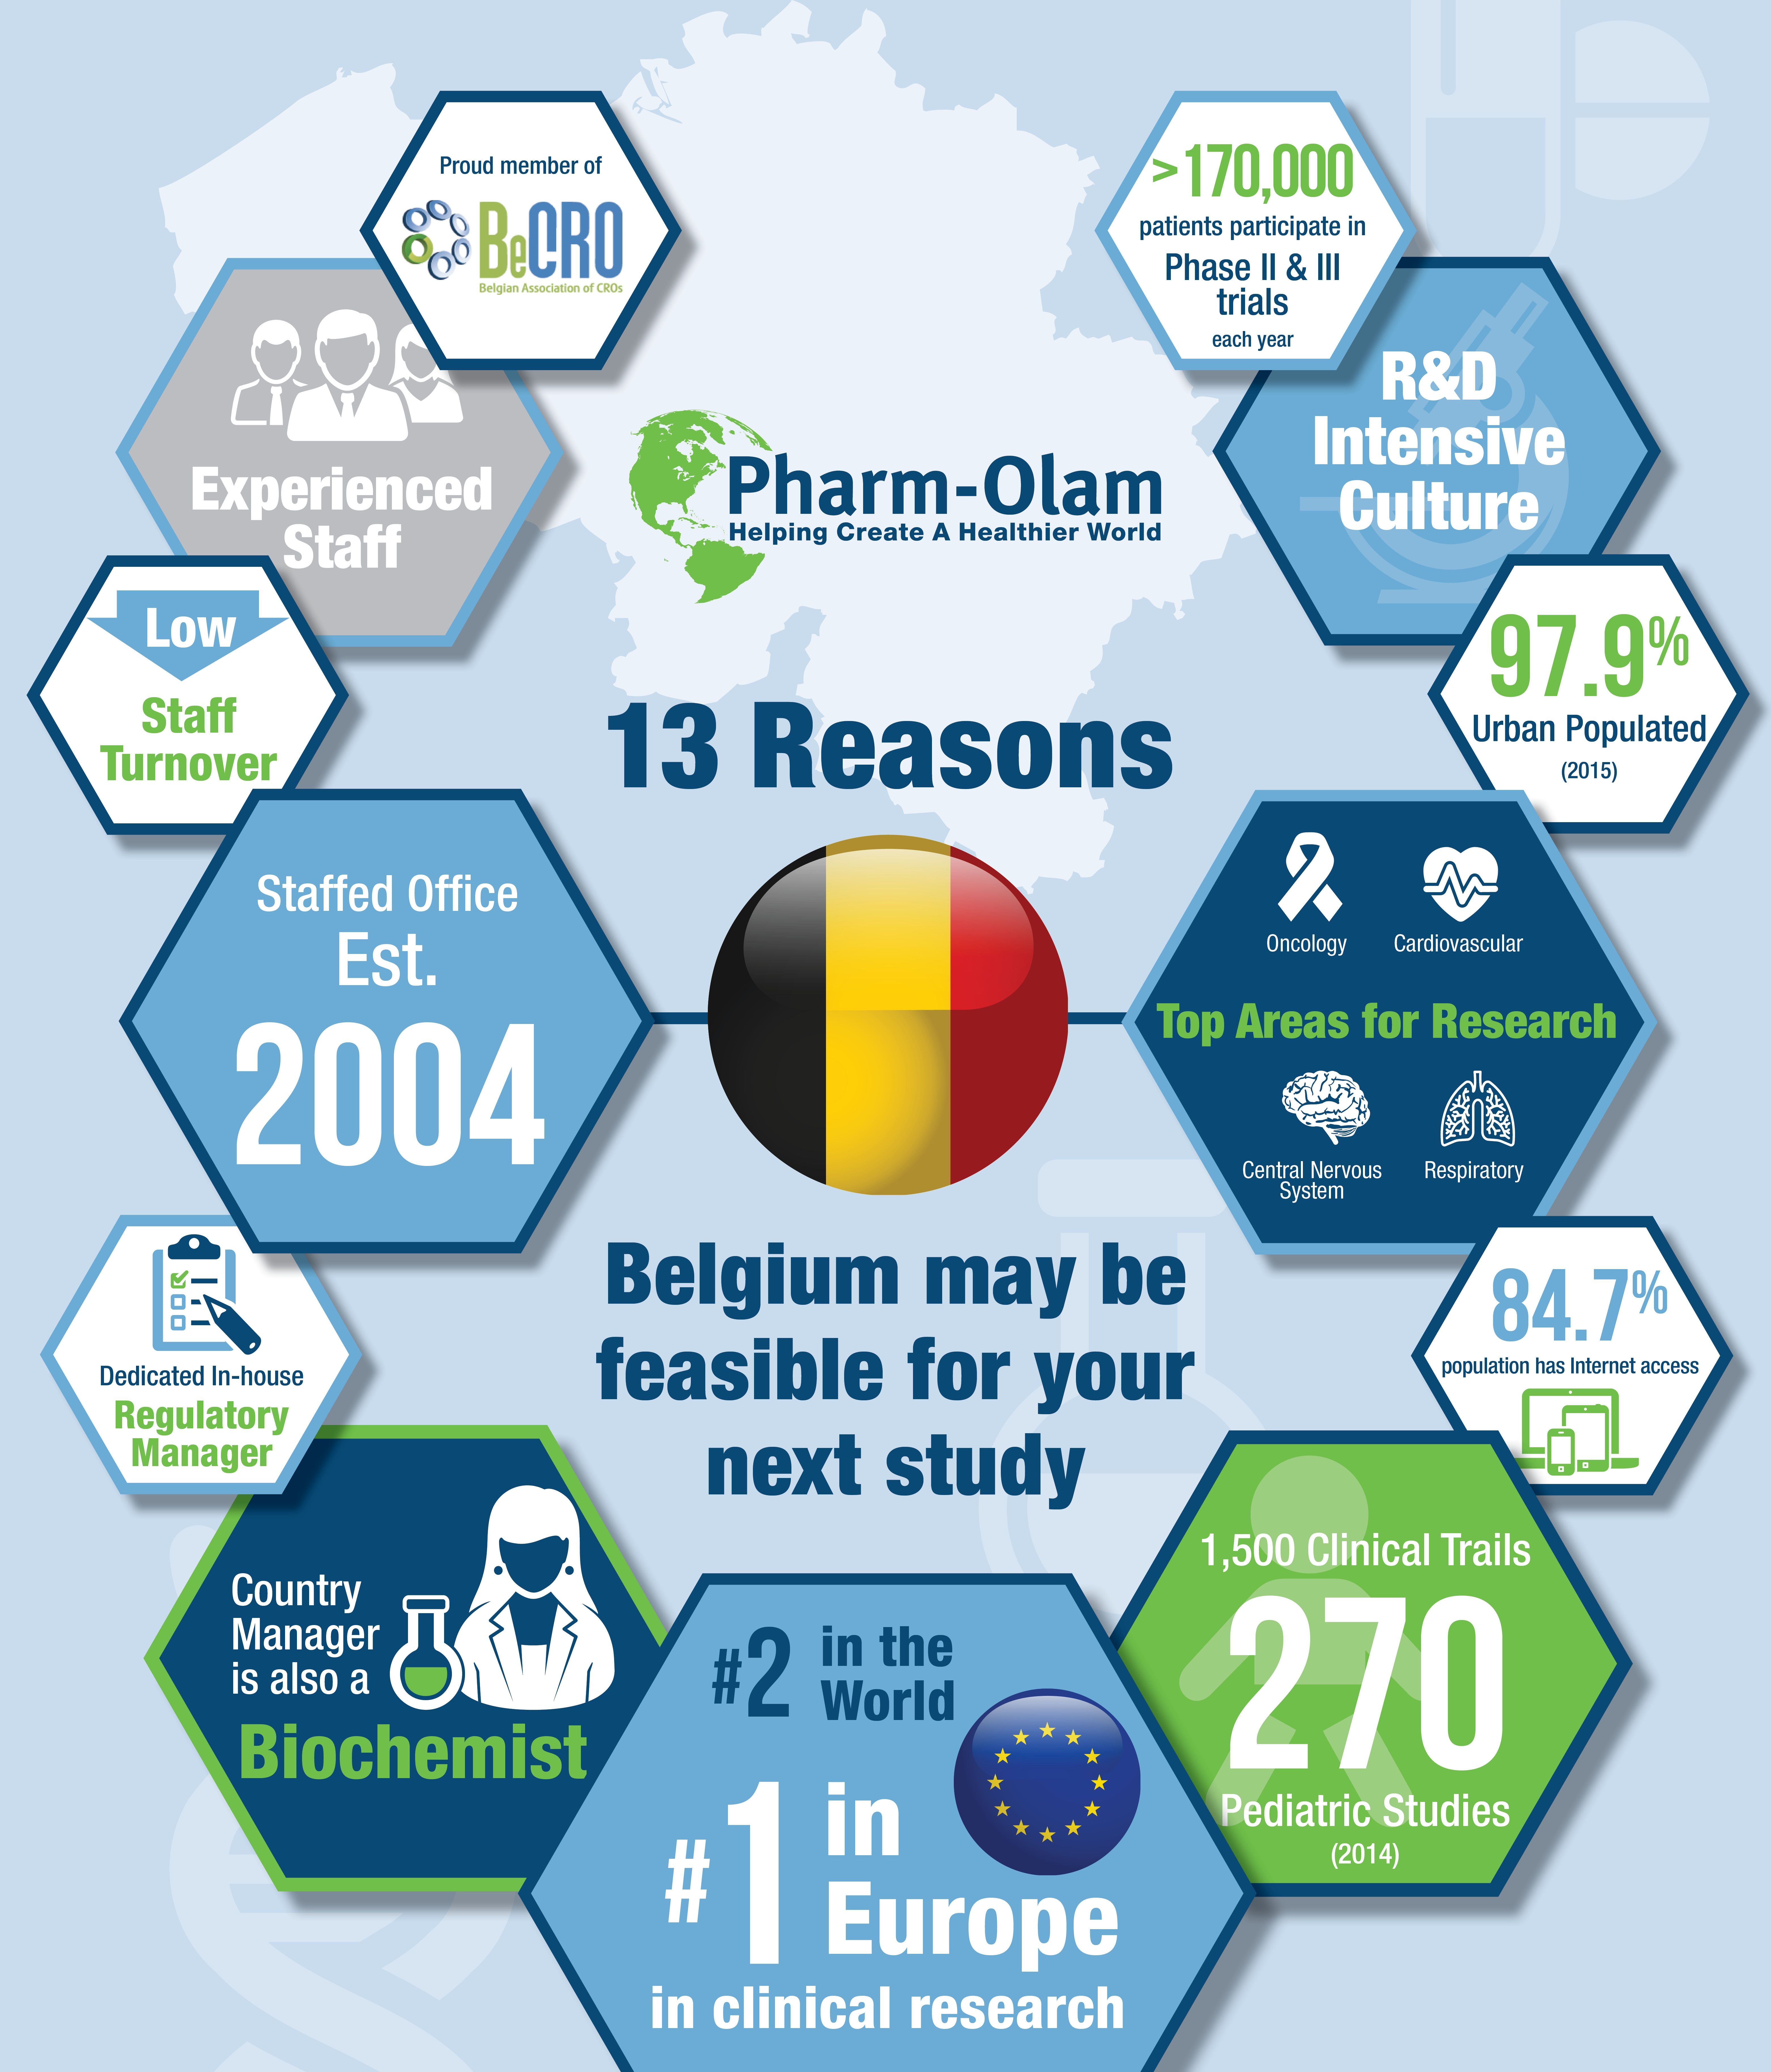 13 Reasons to Choose Belgium for Your Next Trial